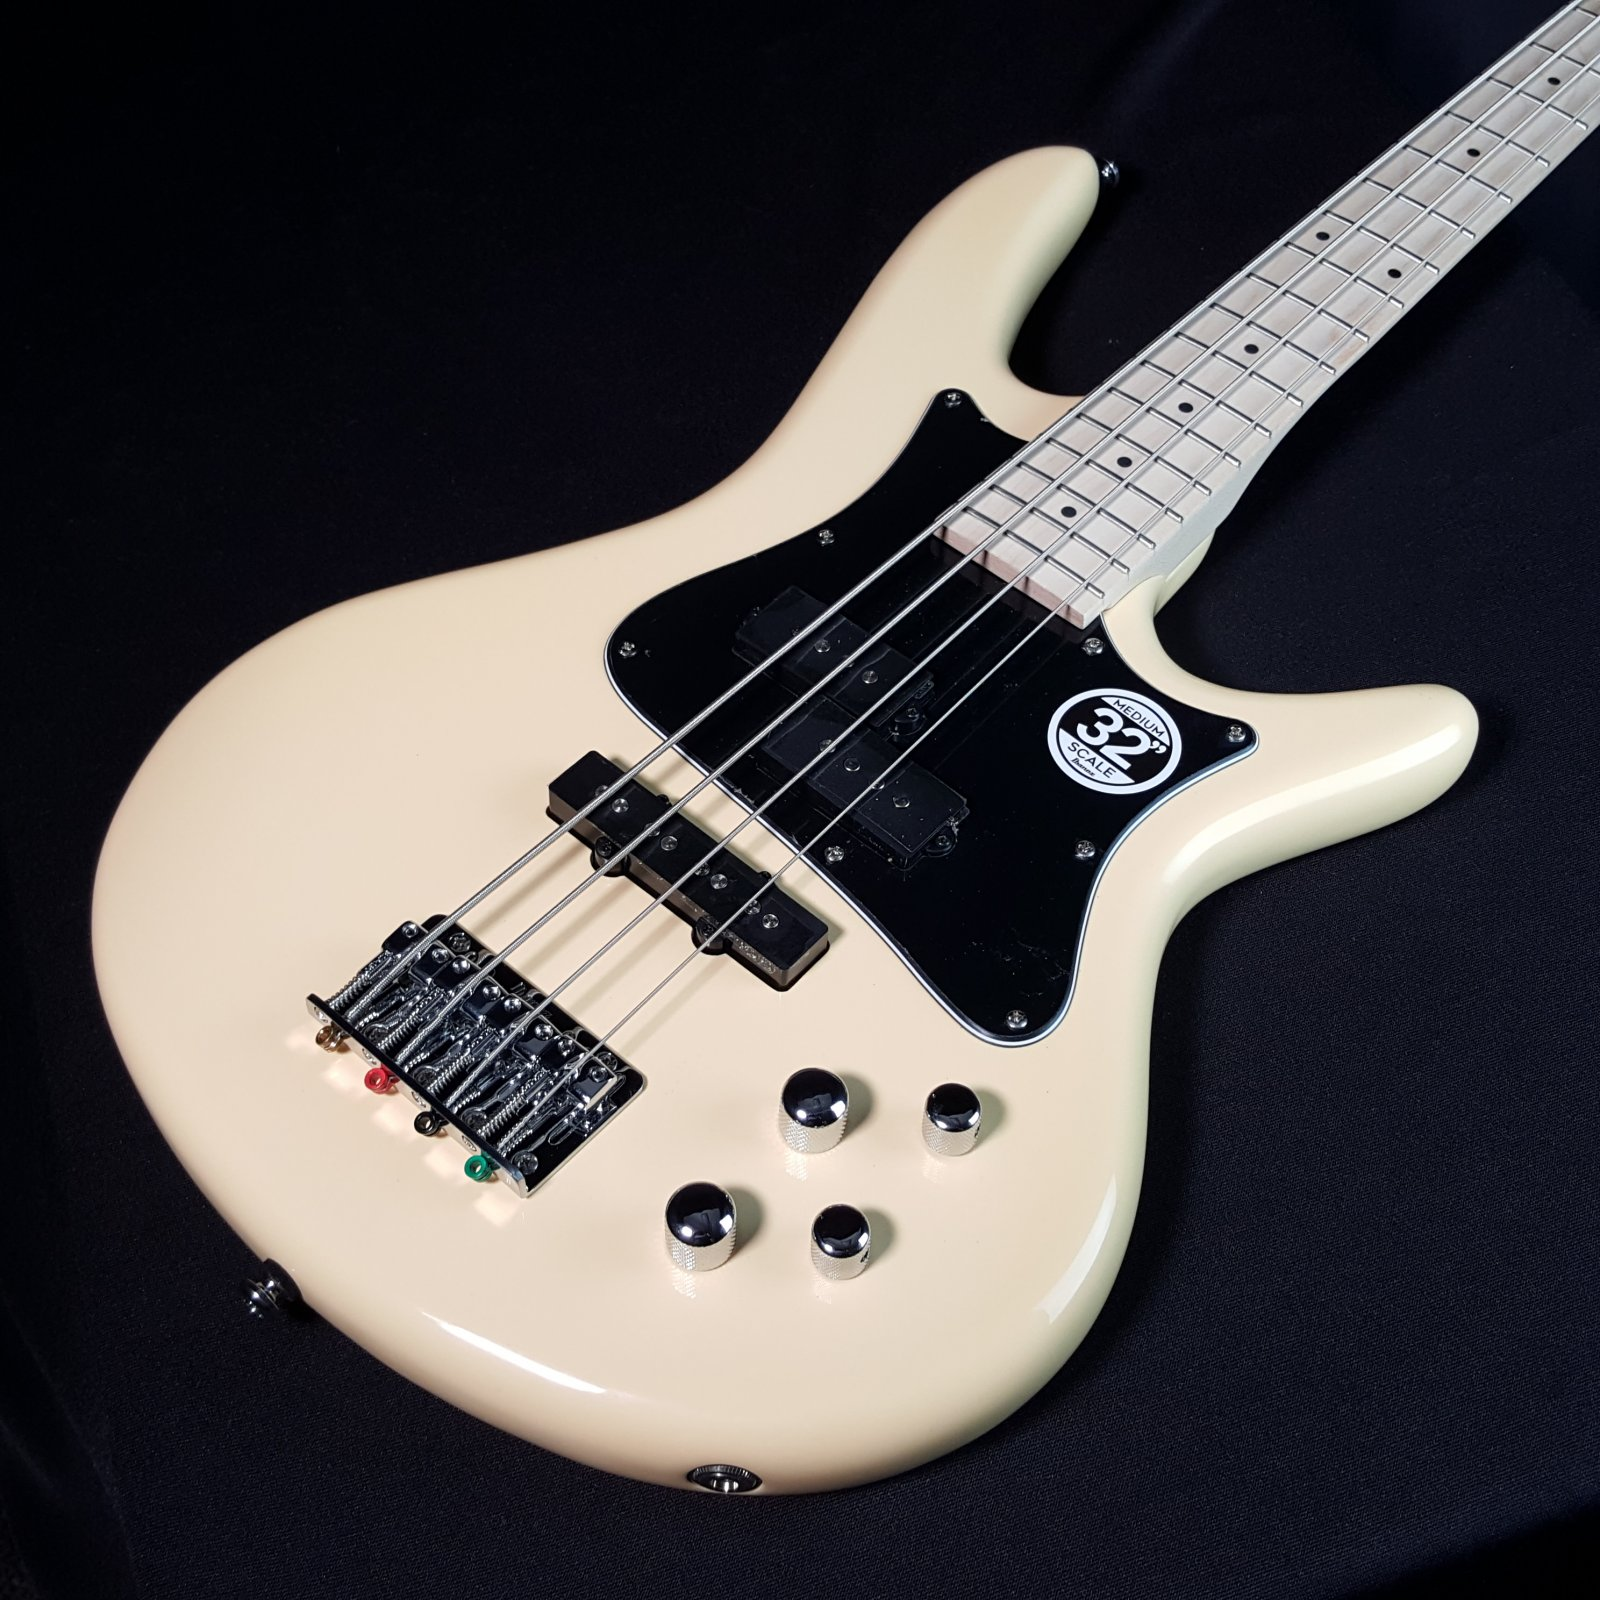 Ibanez Mezzo SRMD200K Medium Scale Bass Vintage White